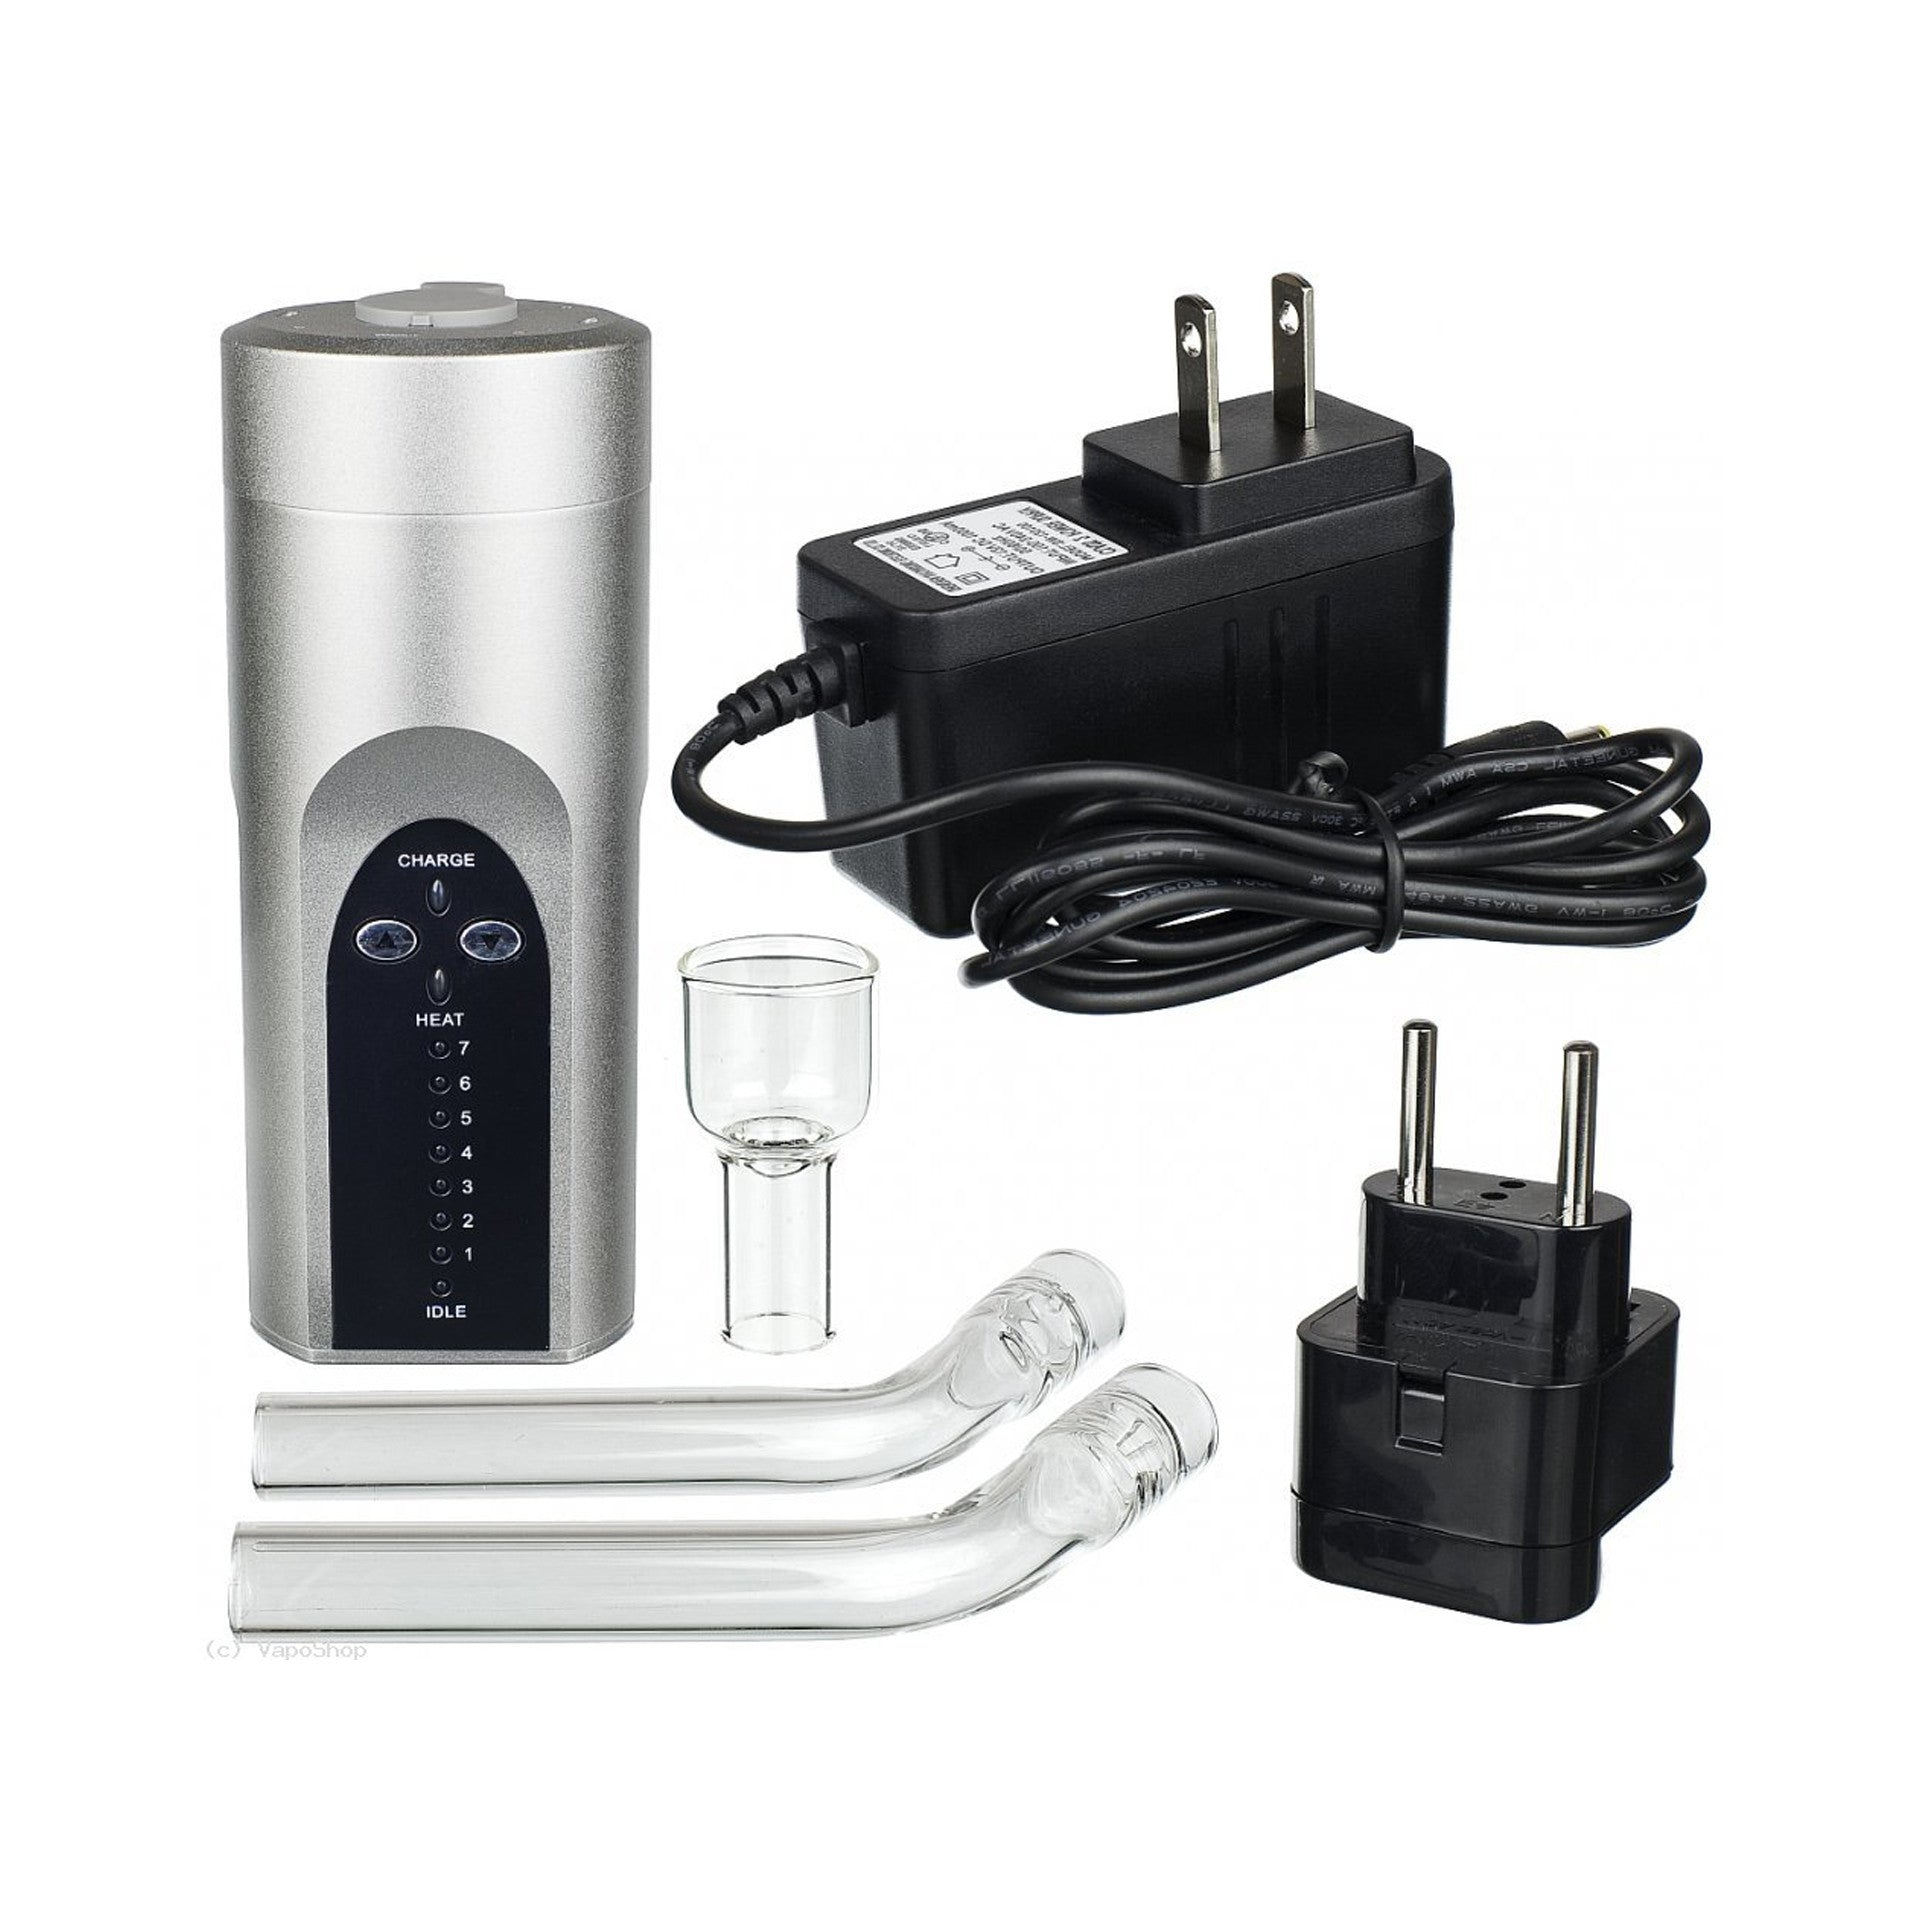 arizer solo included in box